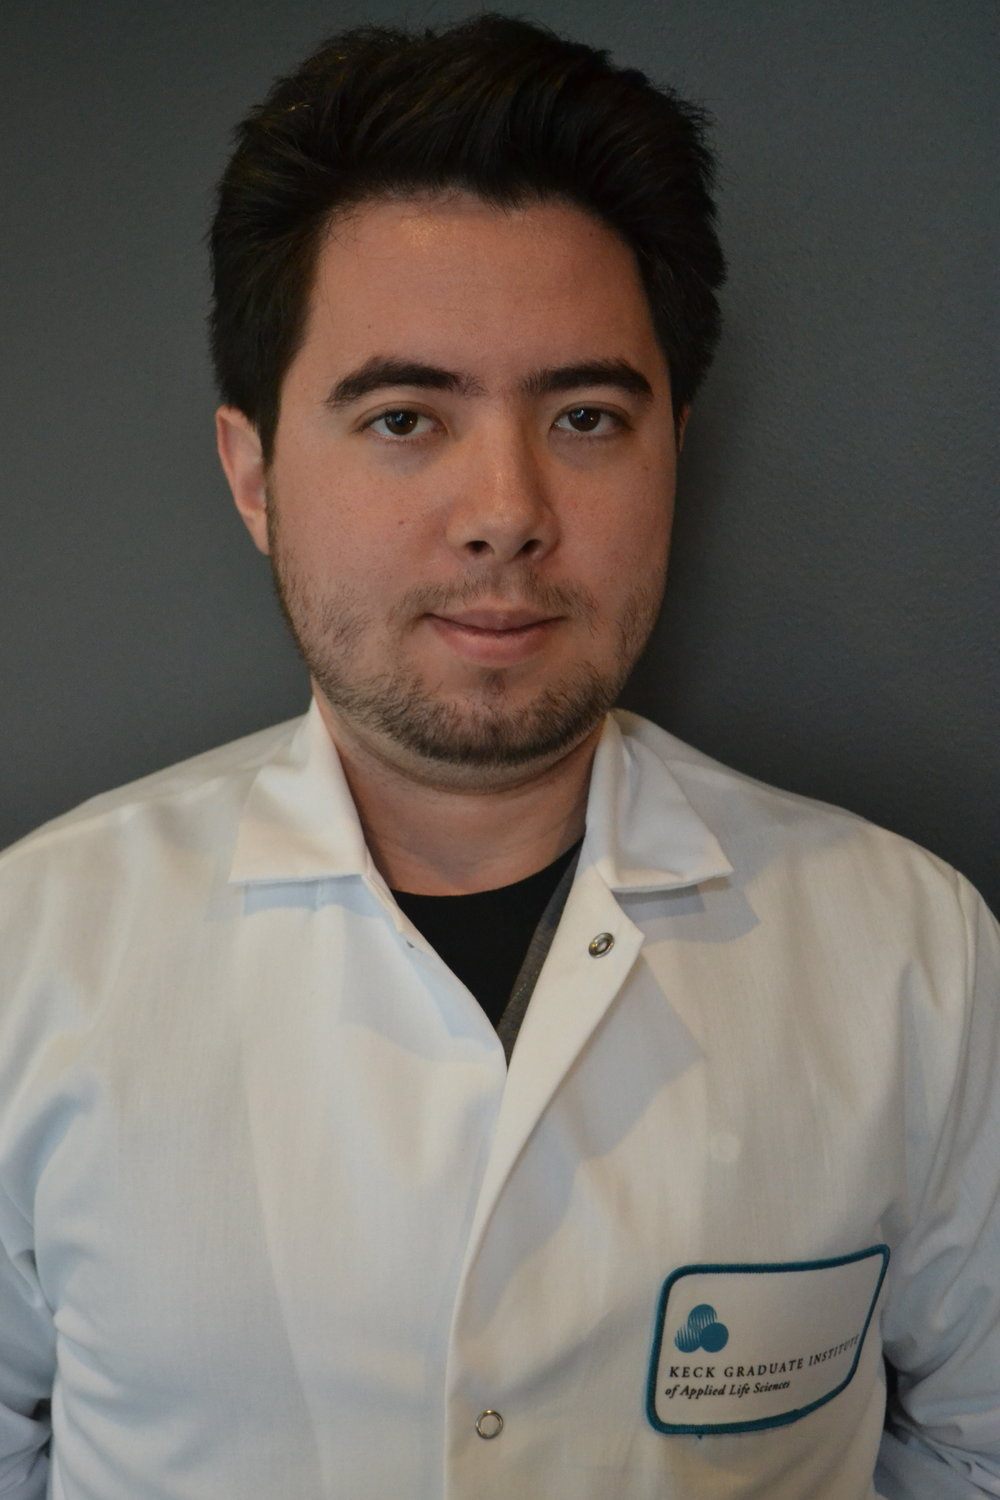 Joshua Littig - Master of ScienceJoshua earned a BA degree in Neuroscience from the University of California Riverside in 2015. He is currently a masters student of Applied Life Science at Keck Graduate Institute with interests in biomarker discovery.